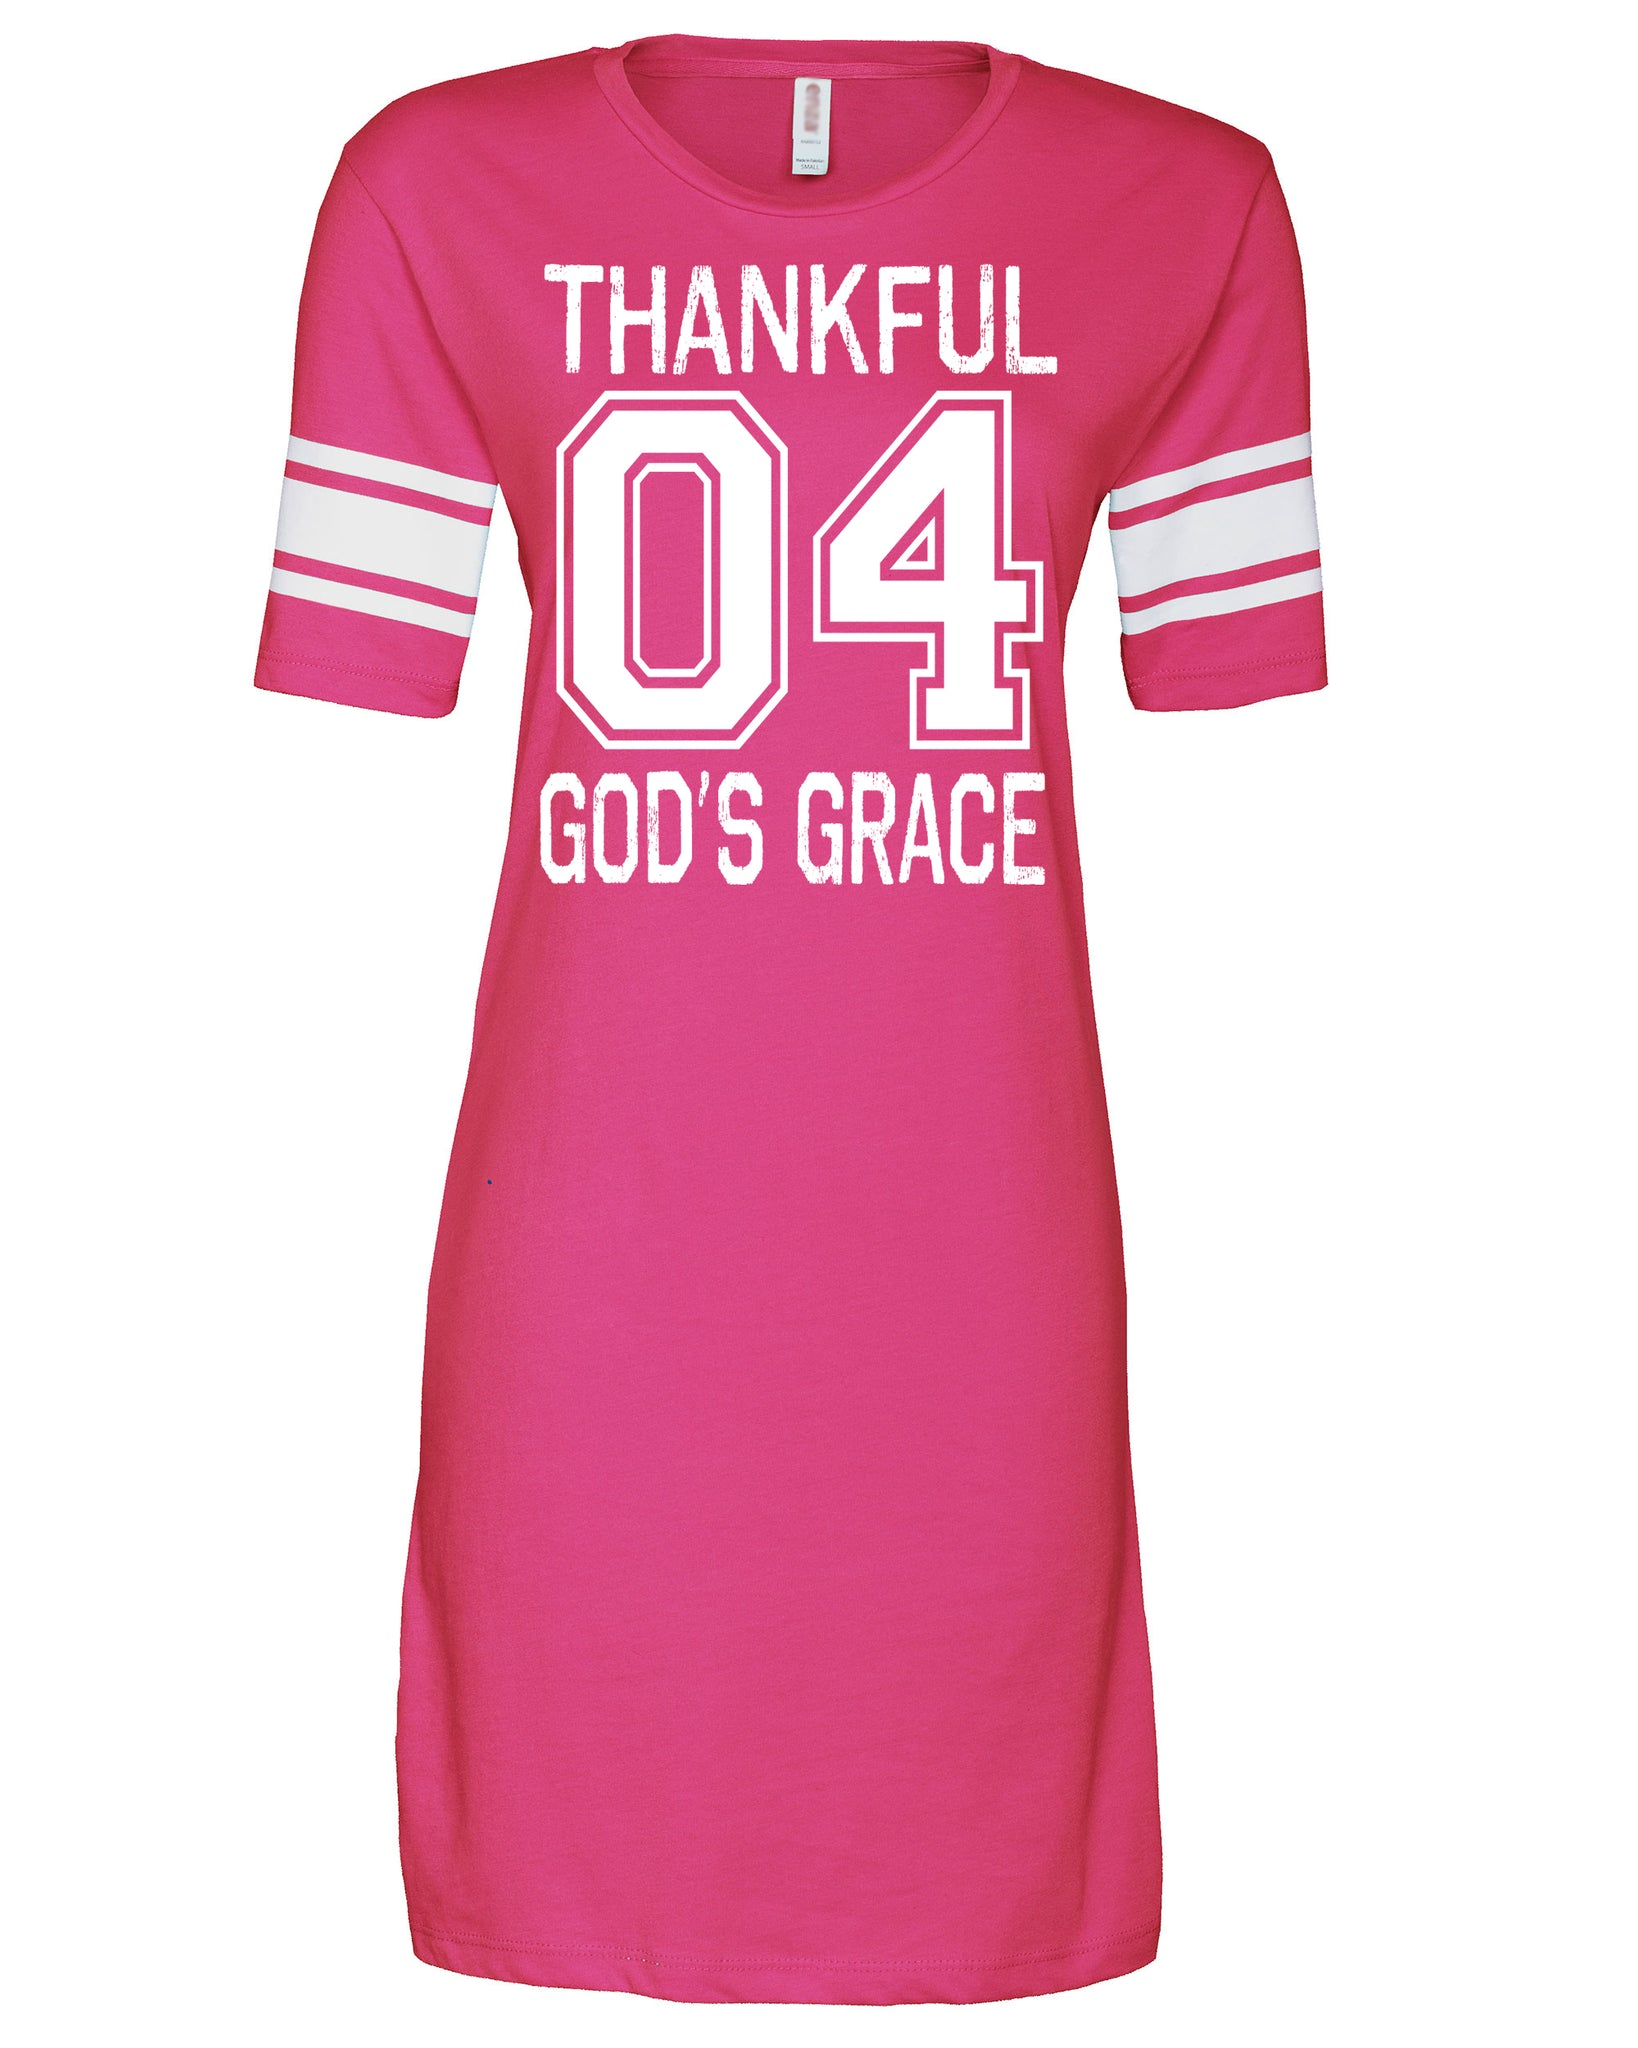 Thankful Jersey Dress